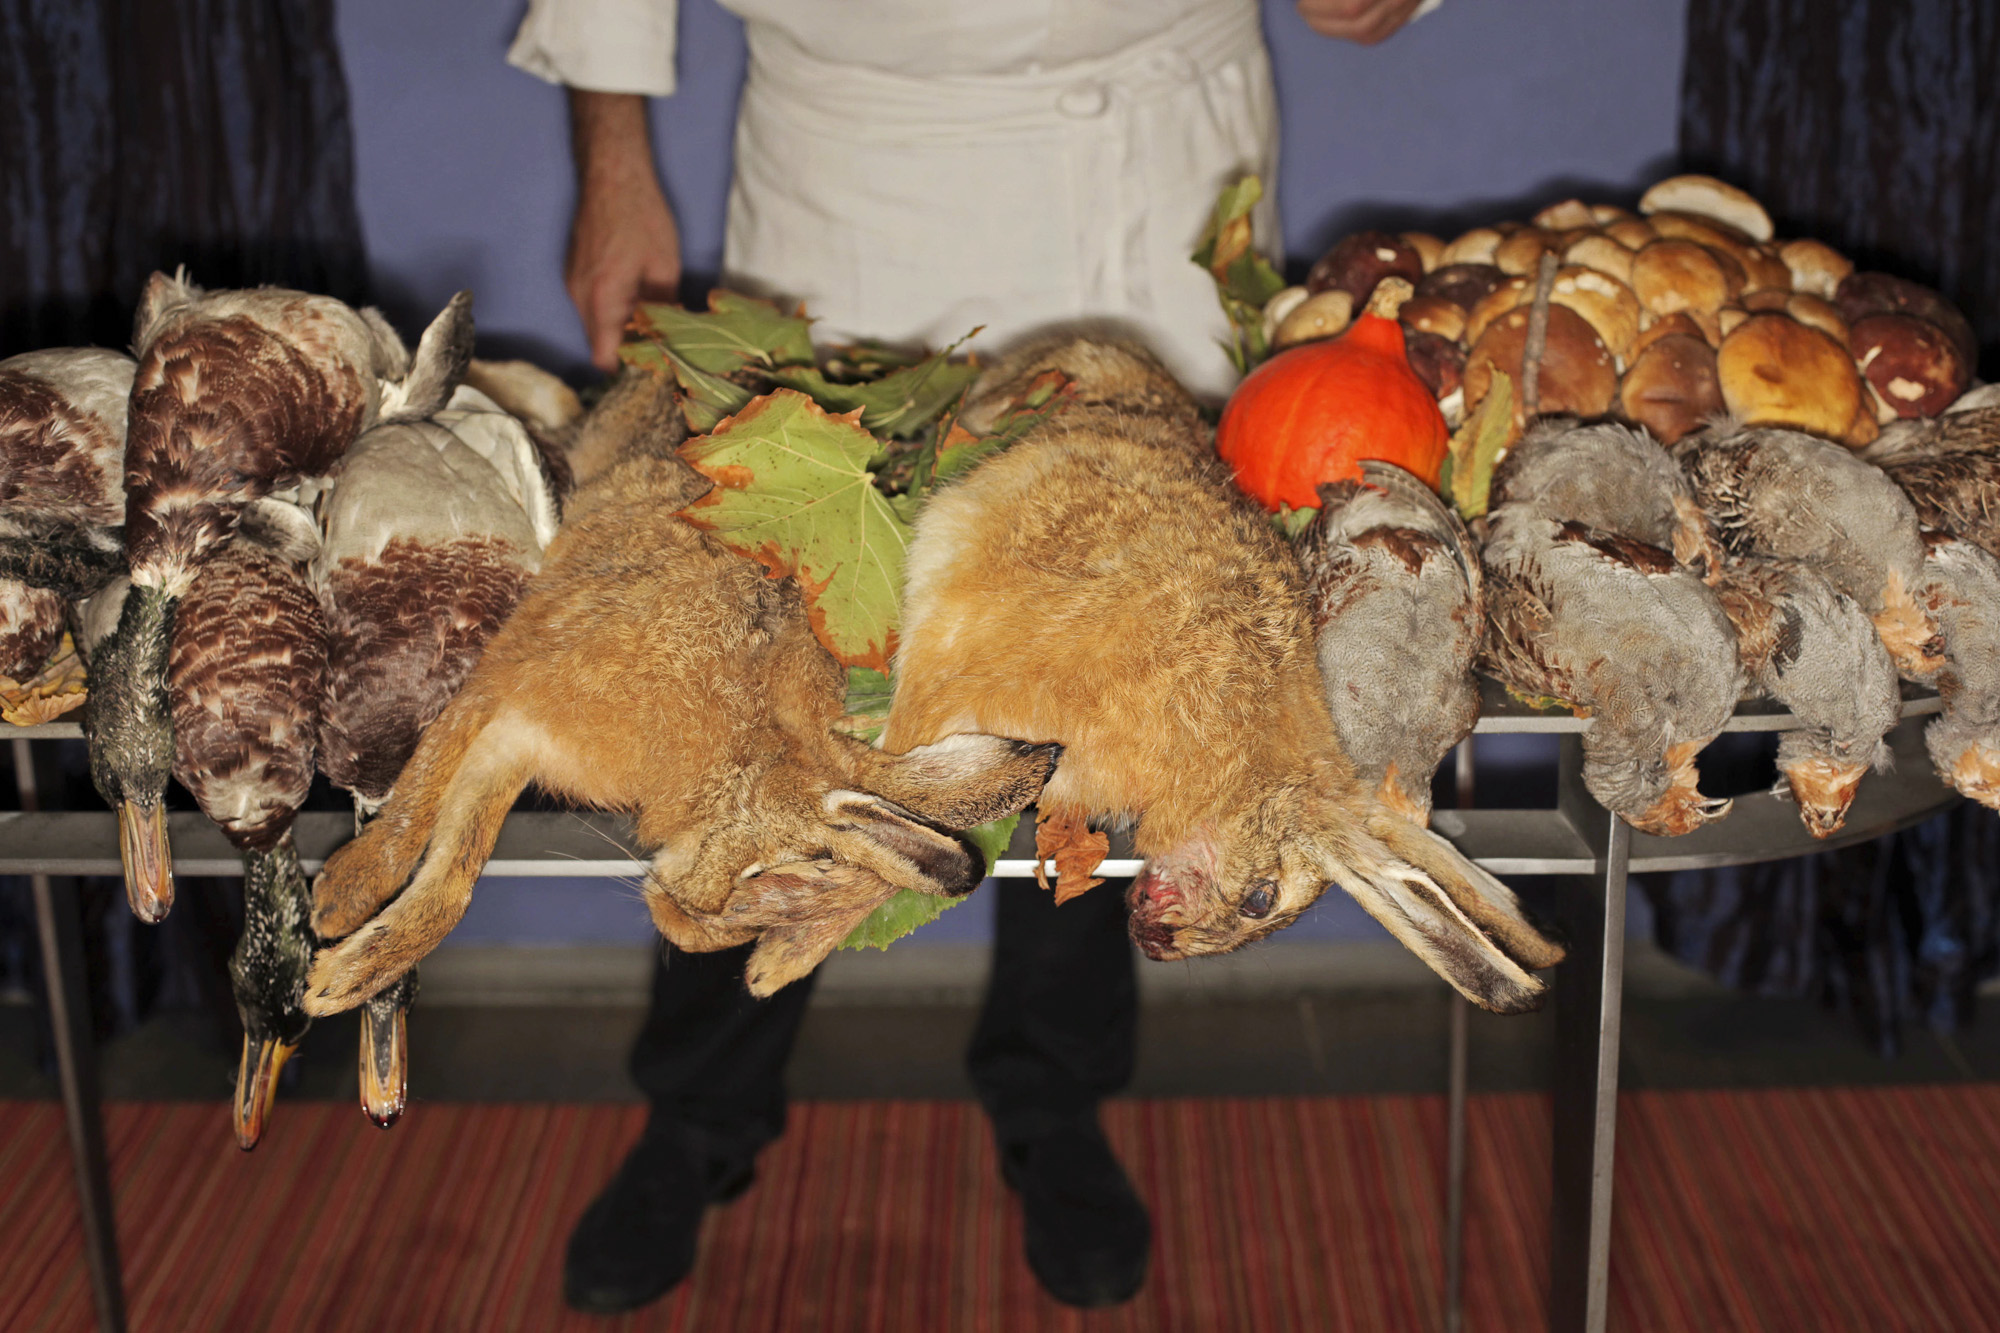 """Two Michelin stars restaurant """"Le Carr� des Feuillants """",Place Vendome, Paris.Chef Alain Dutournier is staging a 'still life' with seasonal game & other typical autumn products in France. From right to left: Mallard ducks, hares, partridges. Fresh Bordeaux ceps in the background."""